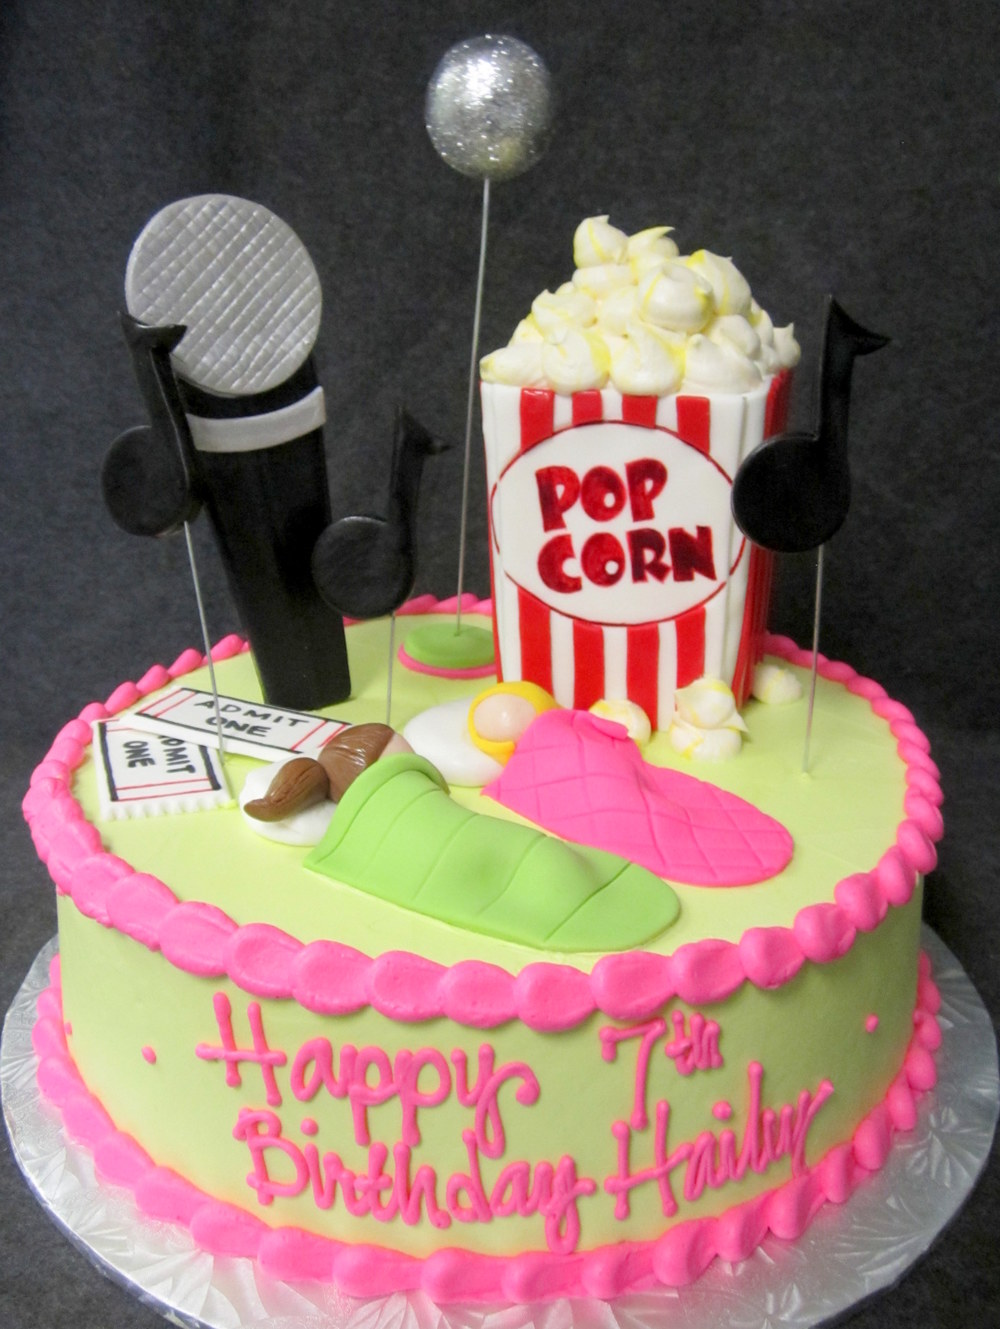 music notes popcorn sleepover girls cake.JPG